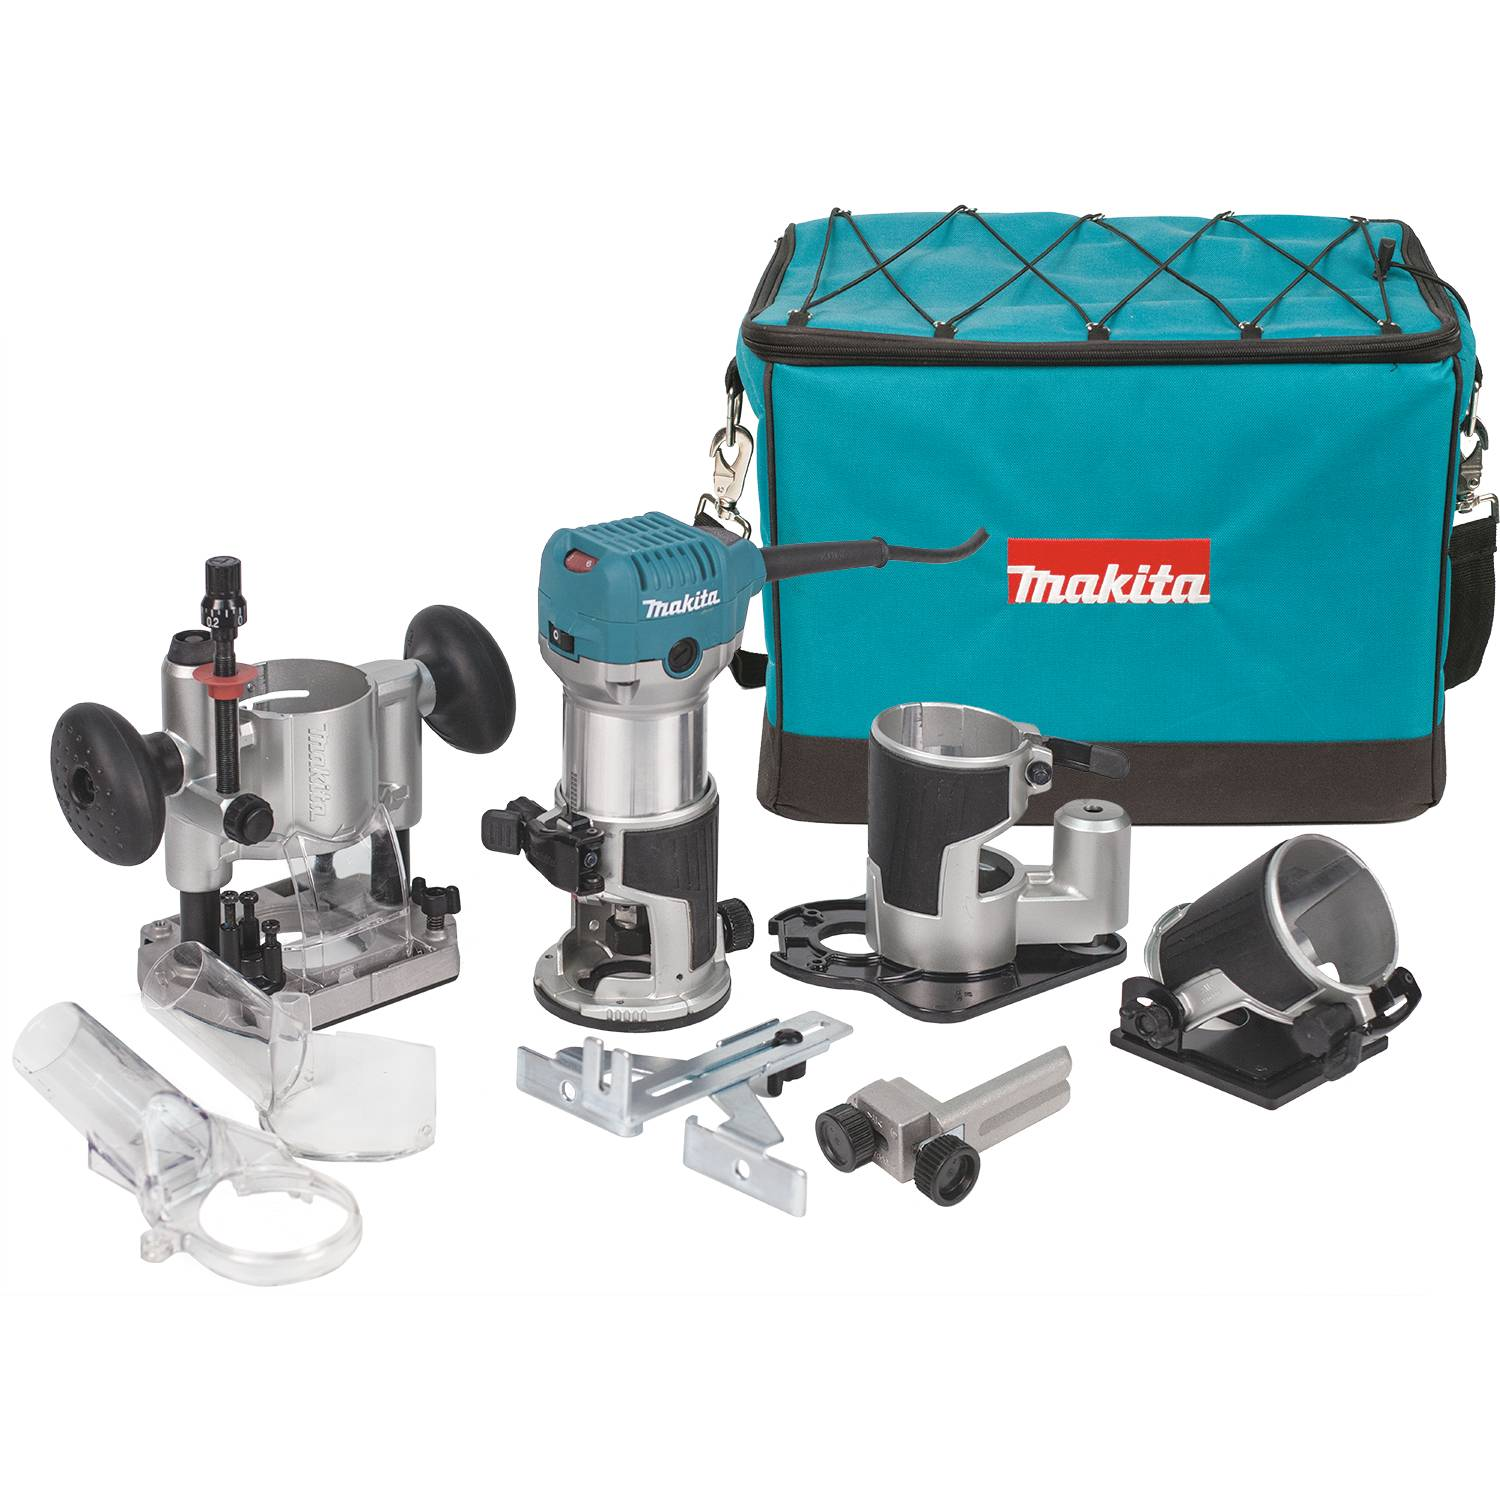 Makita 1 1 4 hp compact router laminate trimmer kit for 3 1 4 hp router motor only